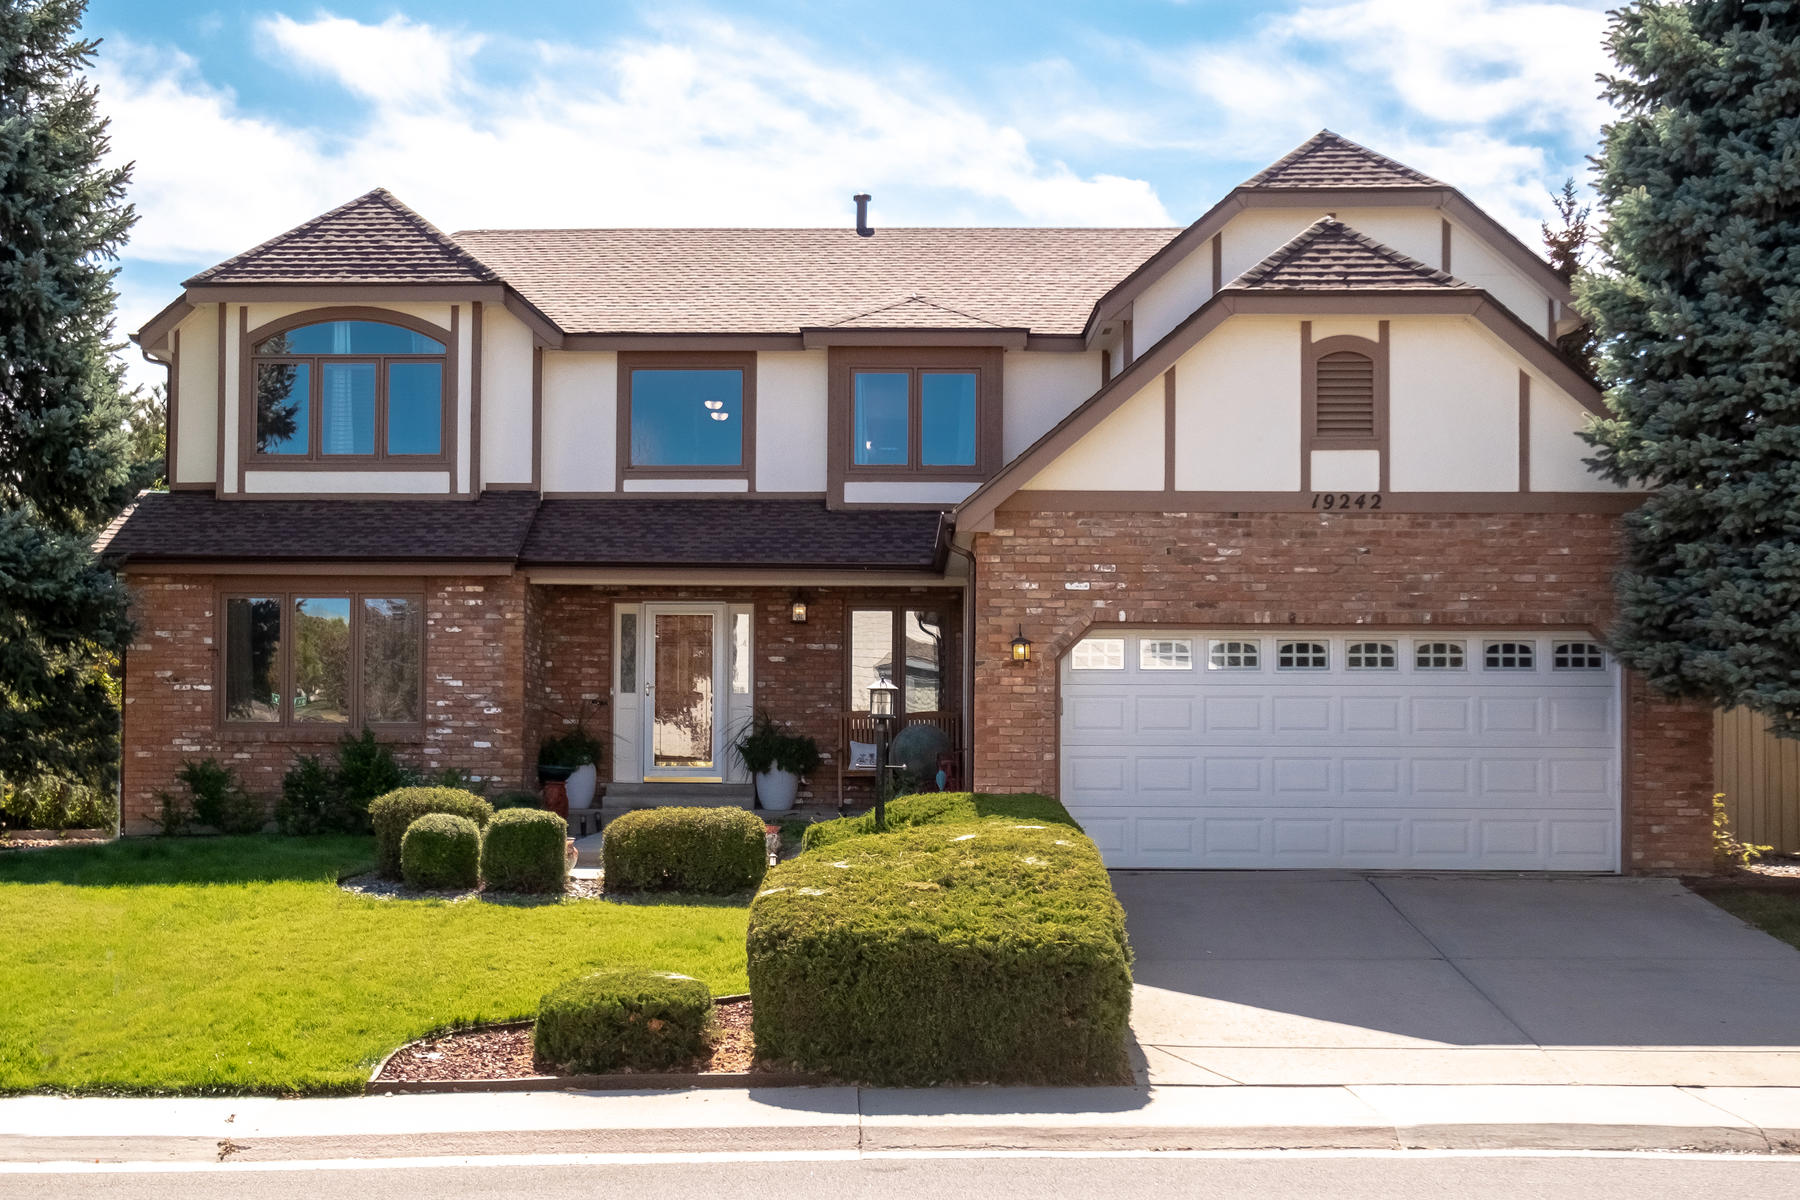 Single Family Homes for Sale at Absolutely Beautiful Piney Creek Home 19242 E Ida Drive Aurora, Colorado 80015 United States